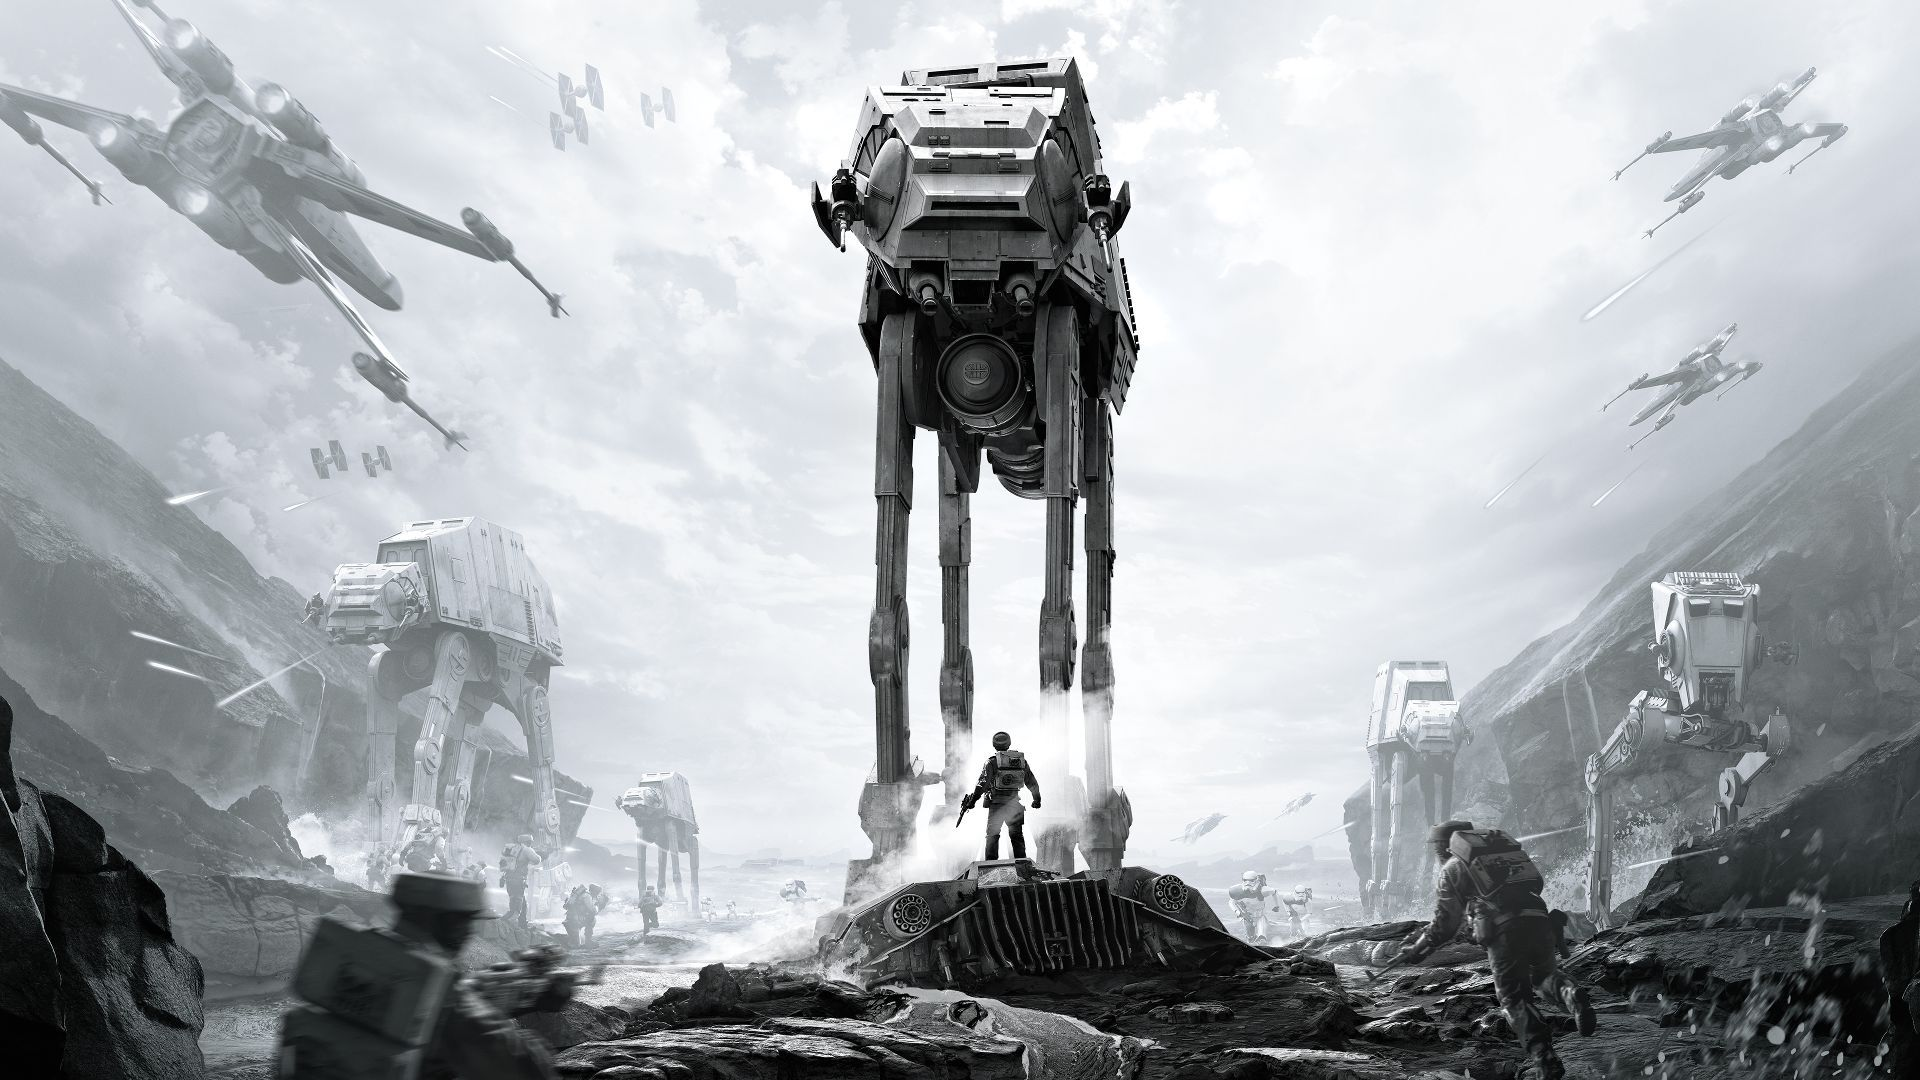 Star Wars Battlefront Ultimate Edition Re Releases November 18 Star Wars Wallpaper Wallpaper Star Wars Star Wars Canvas Painting